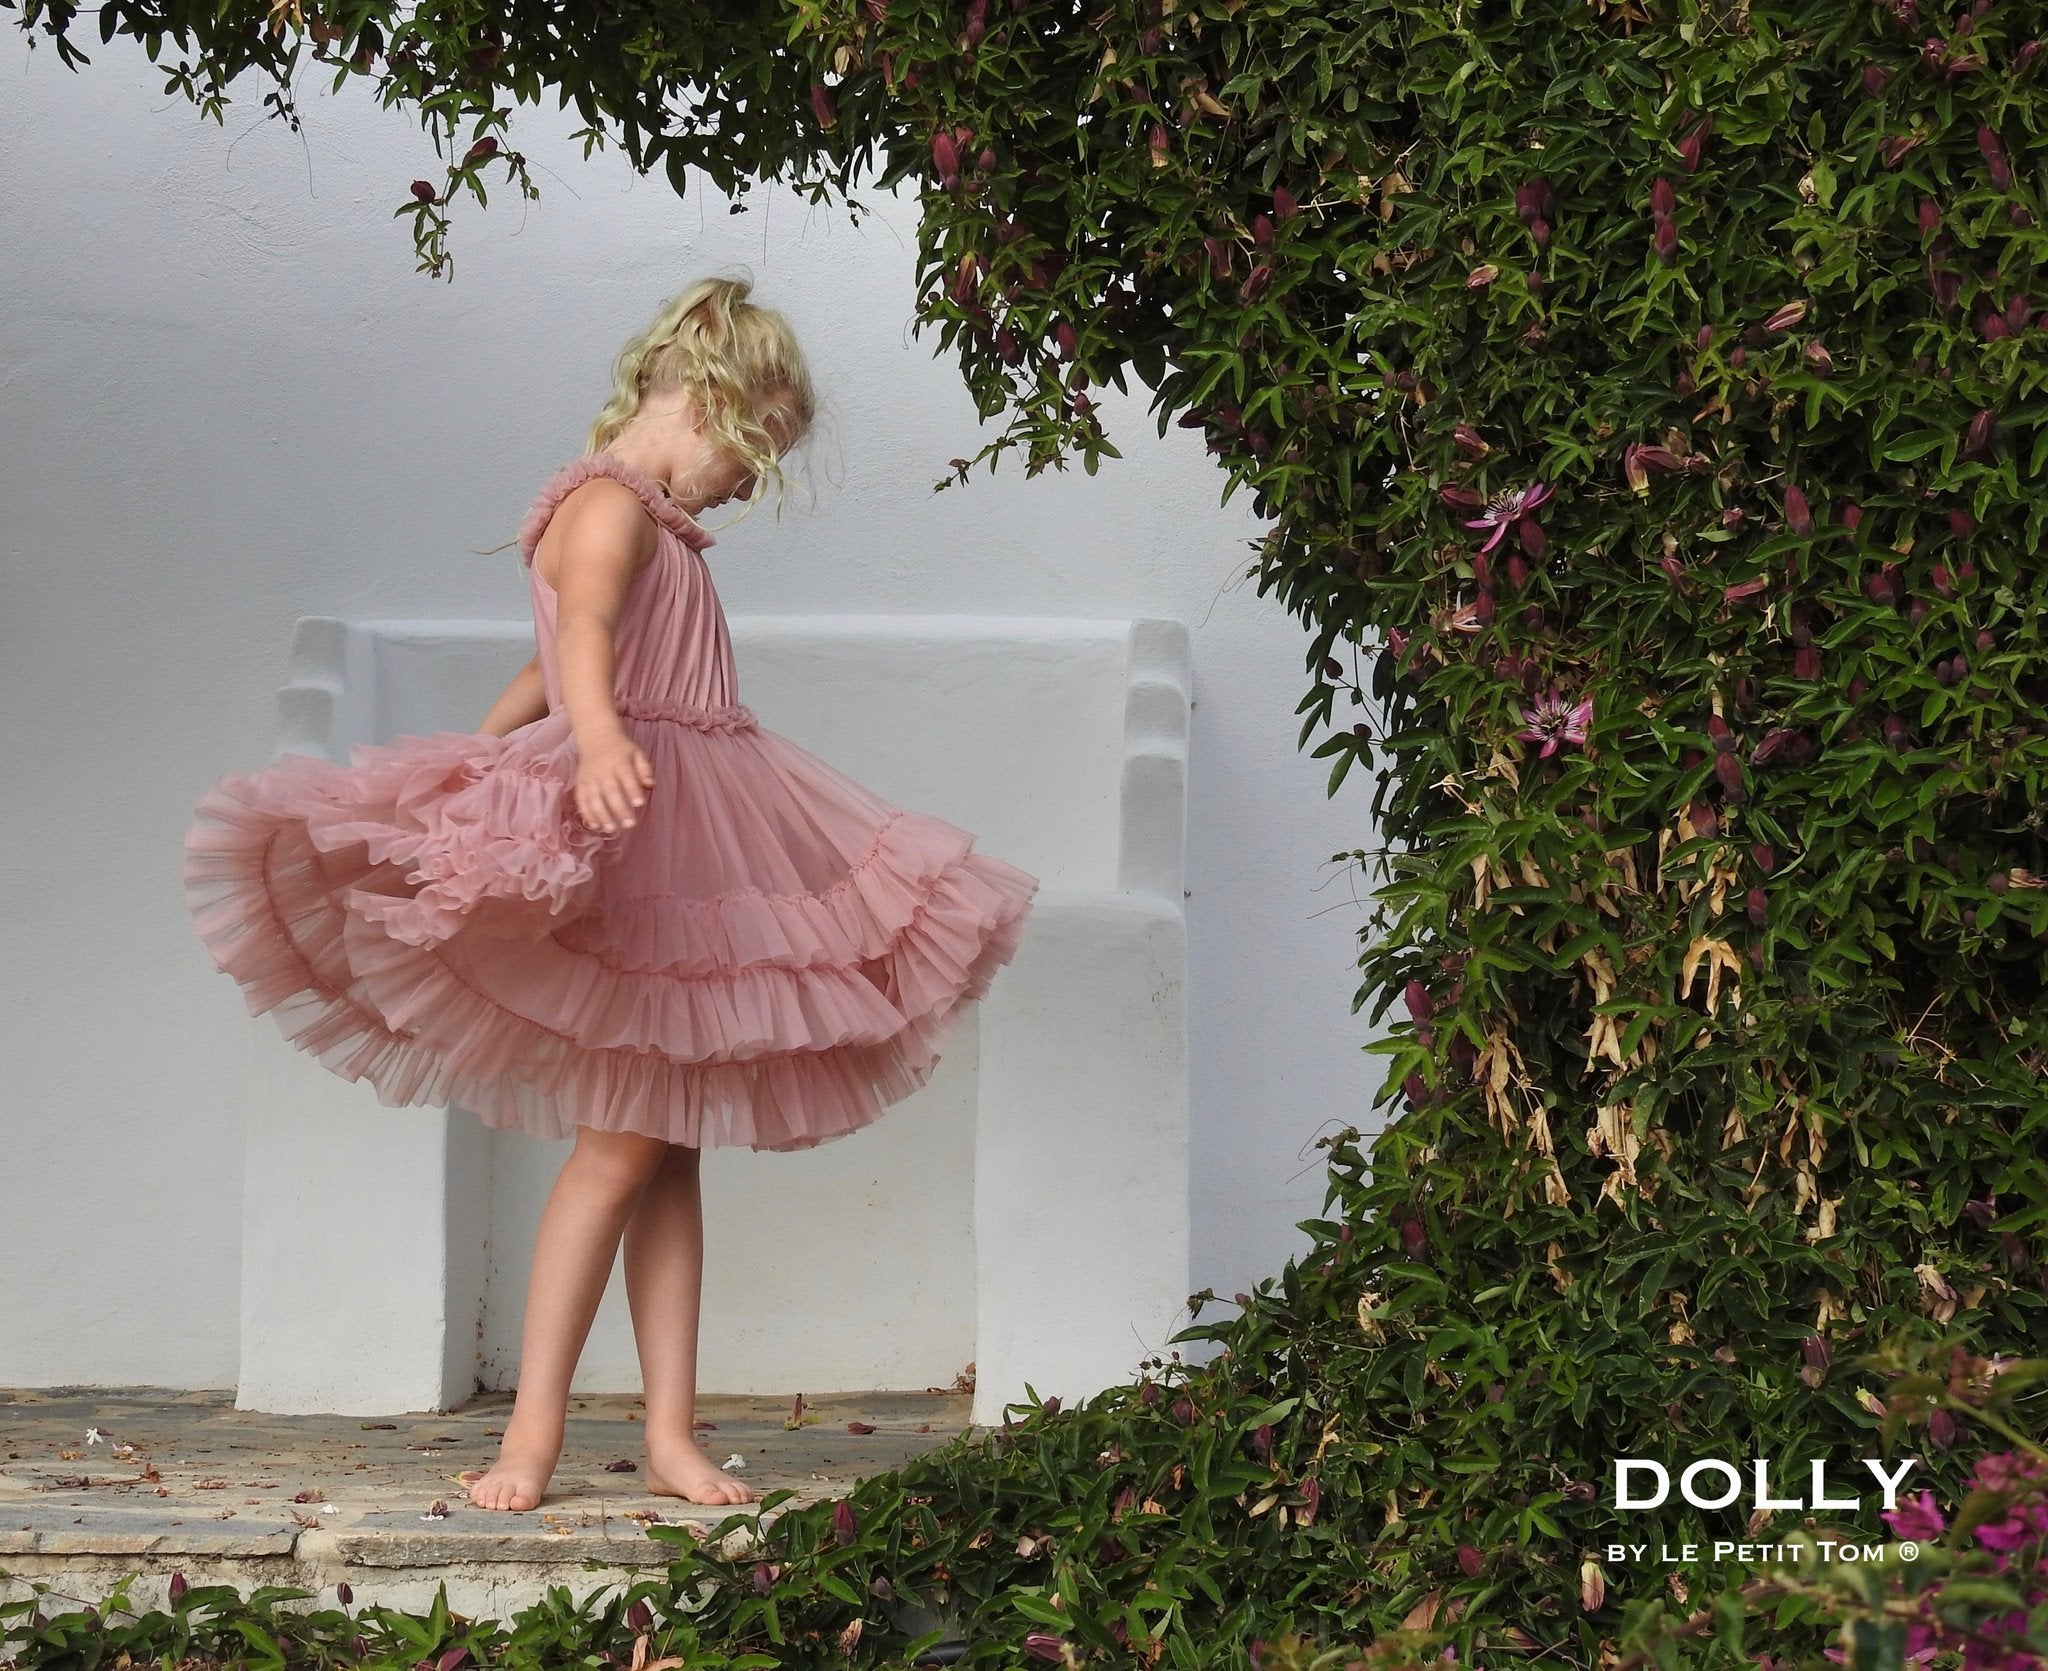 DOLLY by Le Petit Tom ® RUFFLED CHIFFON DANCE DRESS dusty pink - DOLLY by Le Petit Tom ®